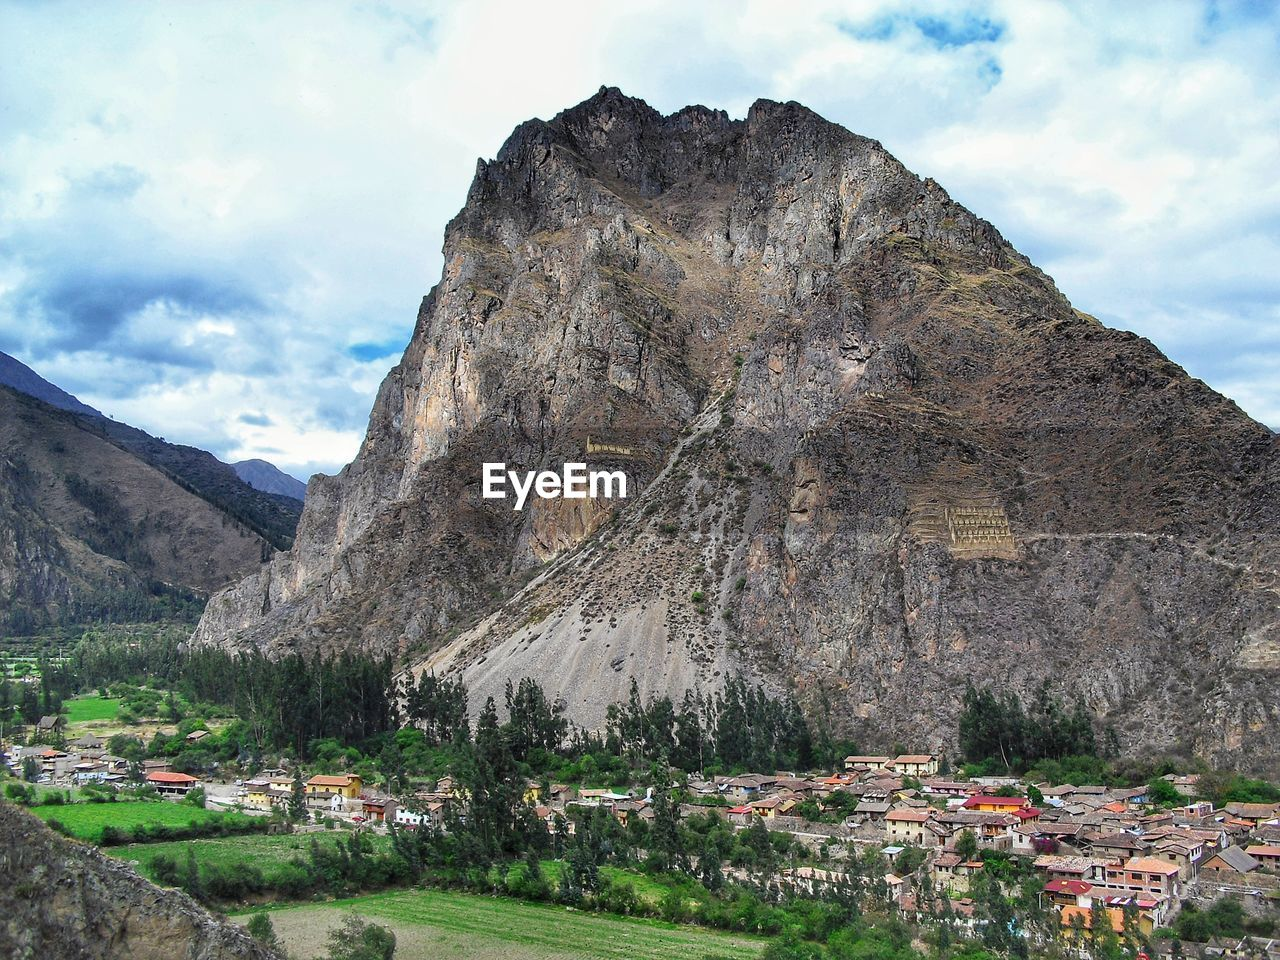 mountain, sky, cloud - sky, architecture, built structure, building exterior, nature, mountain range, day, building, beauty in nature, no people, scenics - nature, travel, environment, travel destinations, rock formation, plant, outdoors, rock, formation, mountain peak